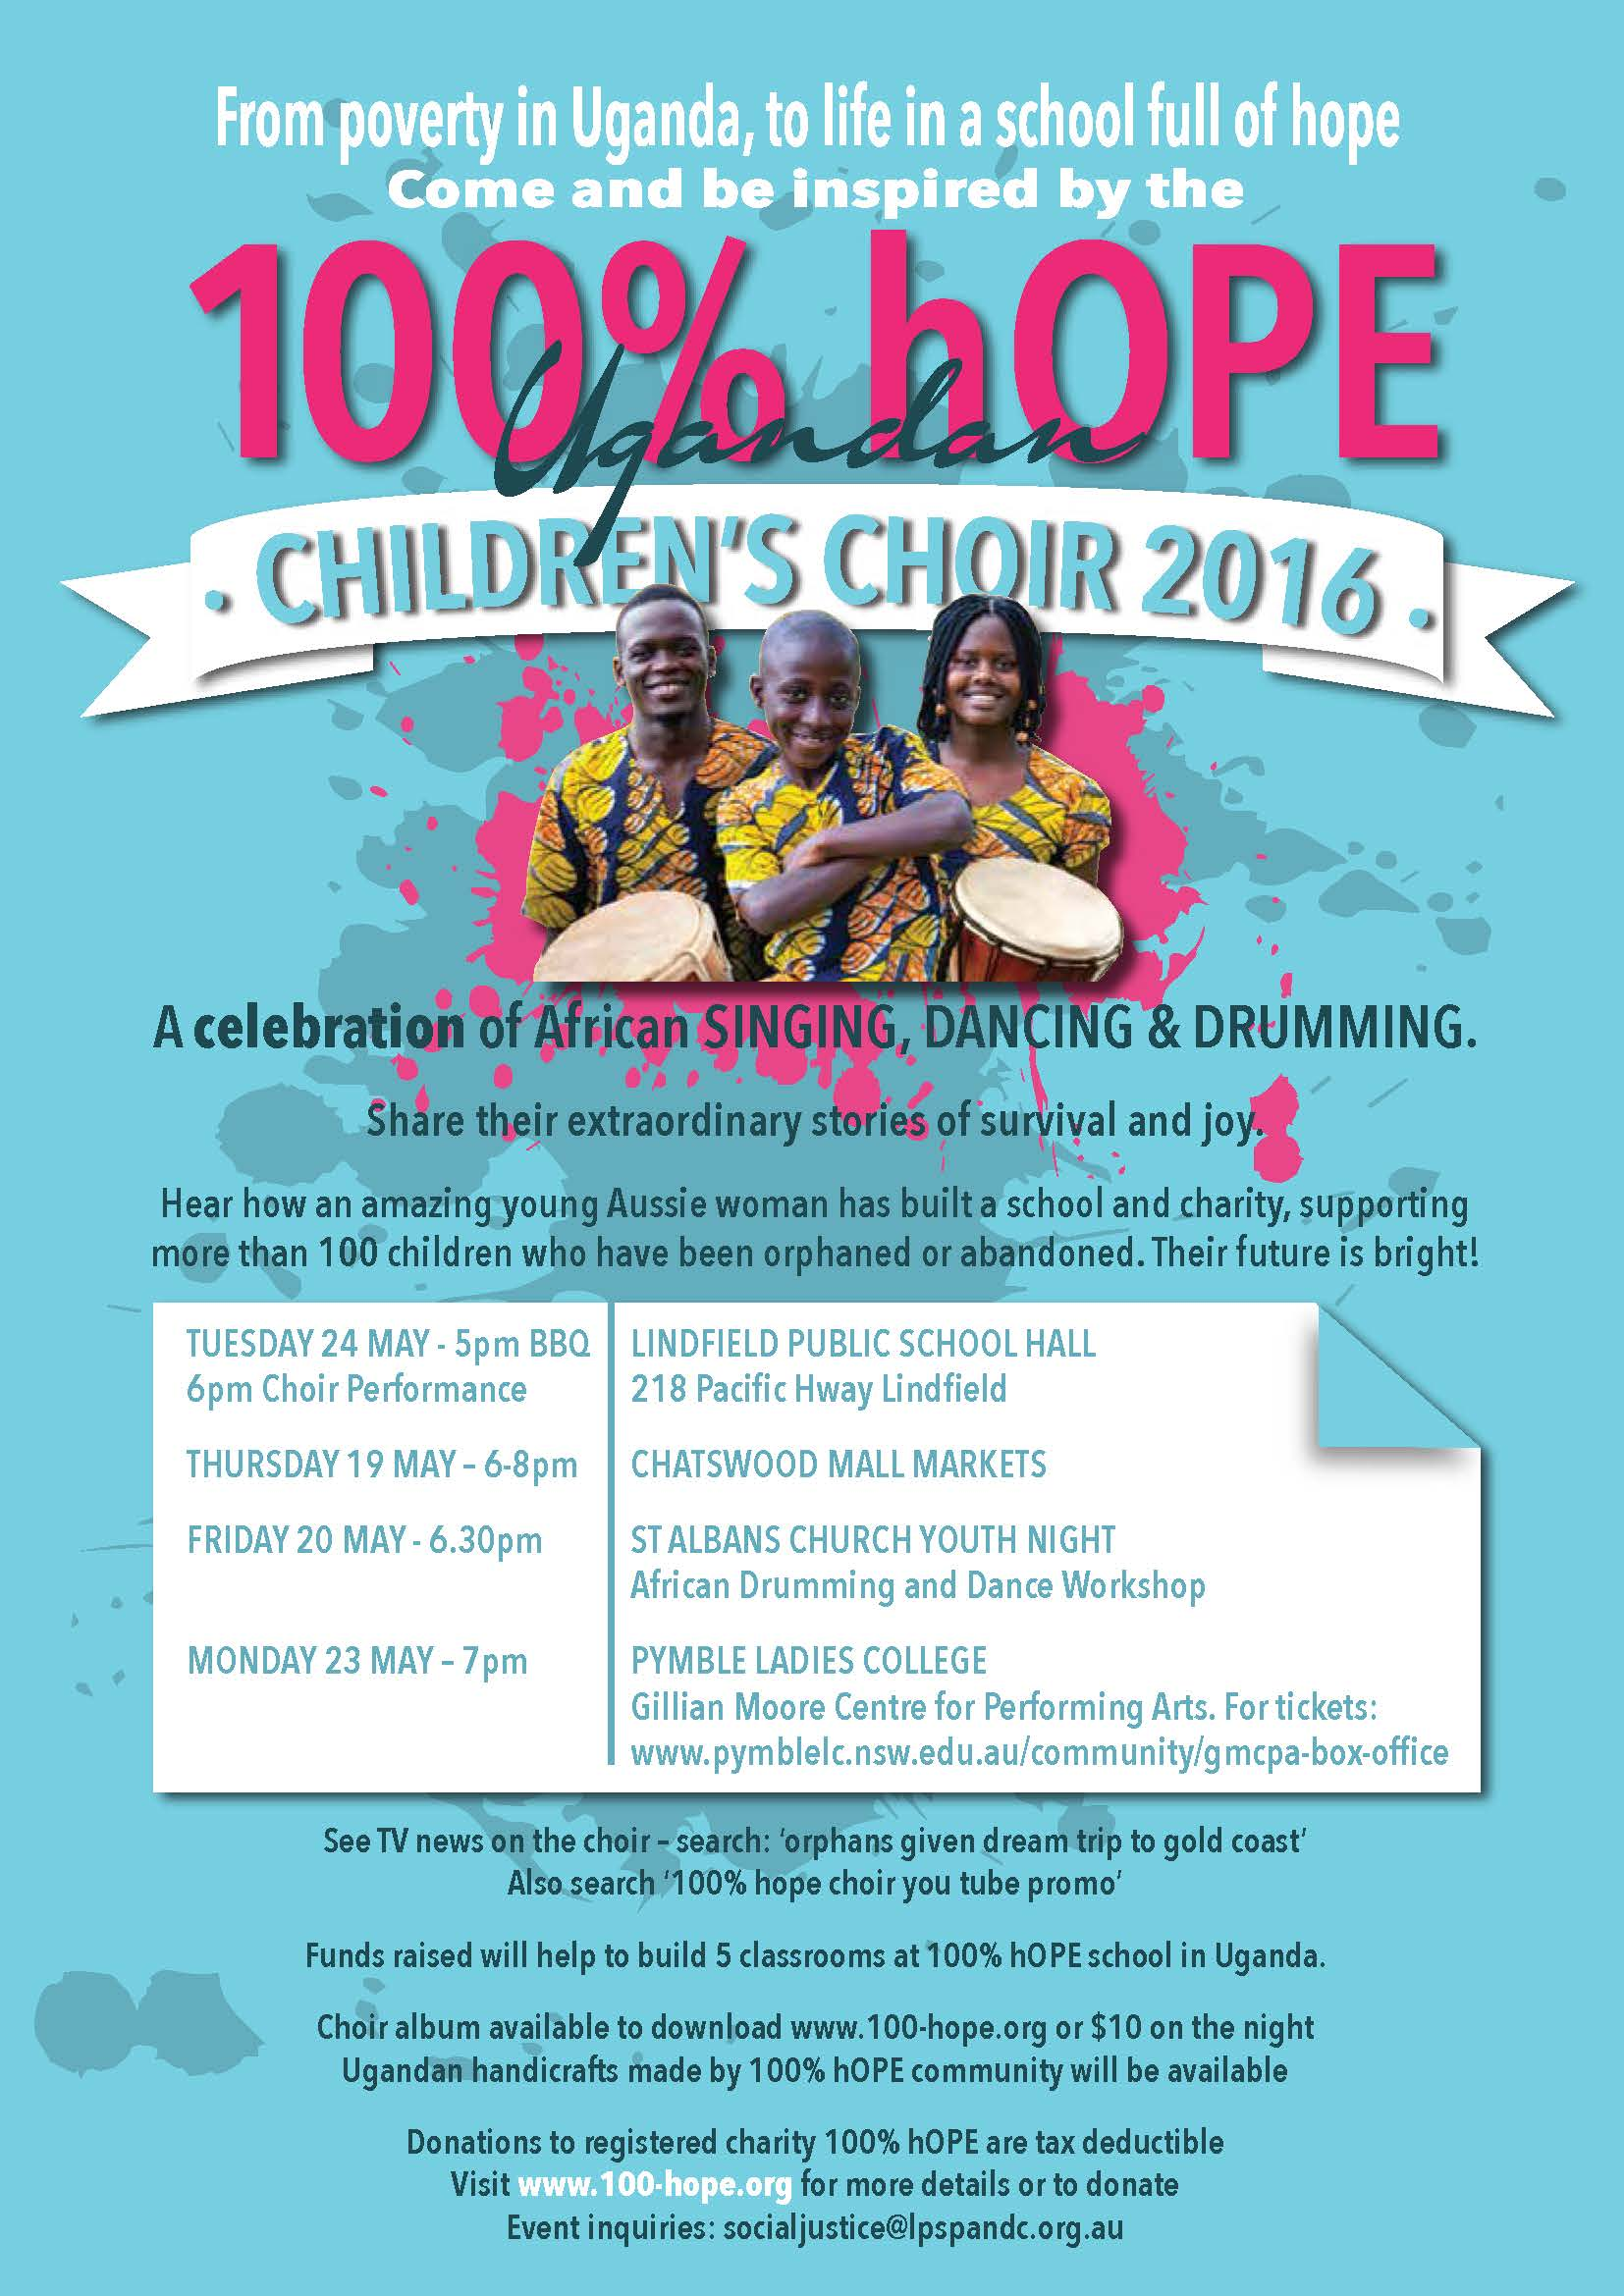 100% hOPE Choir visit flyer May 17